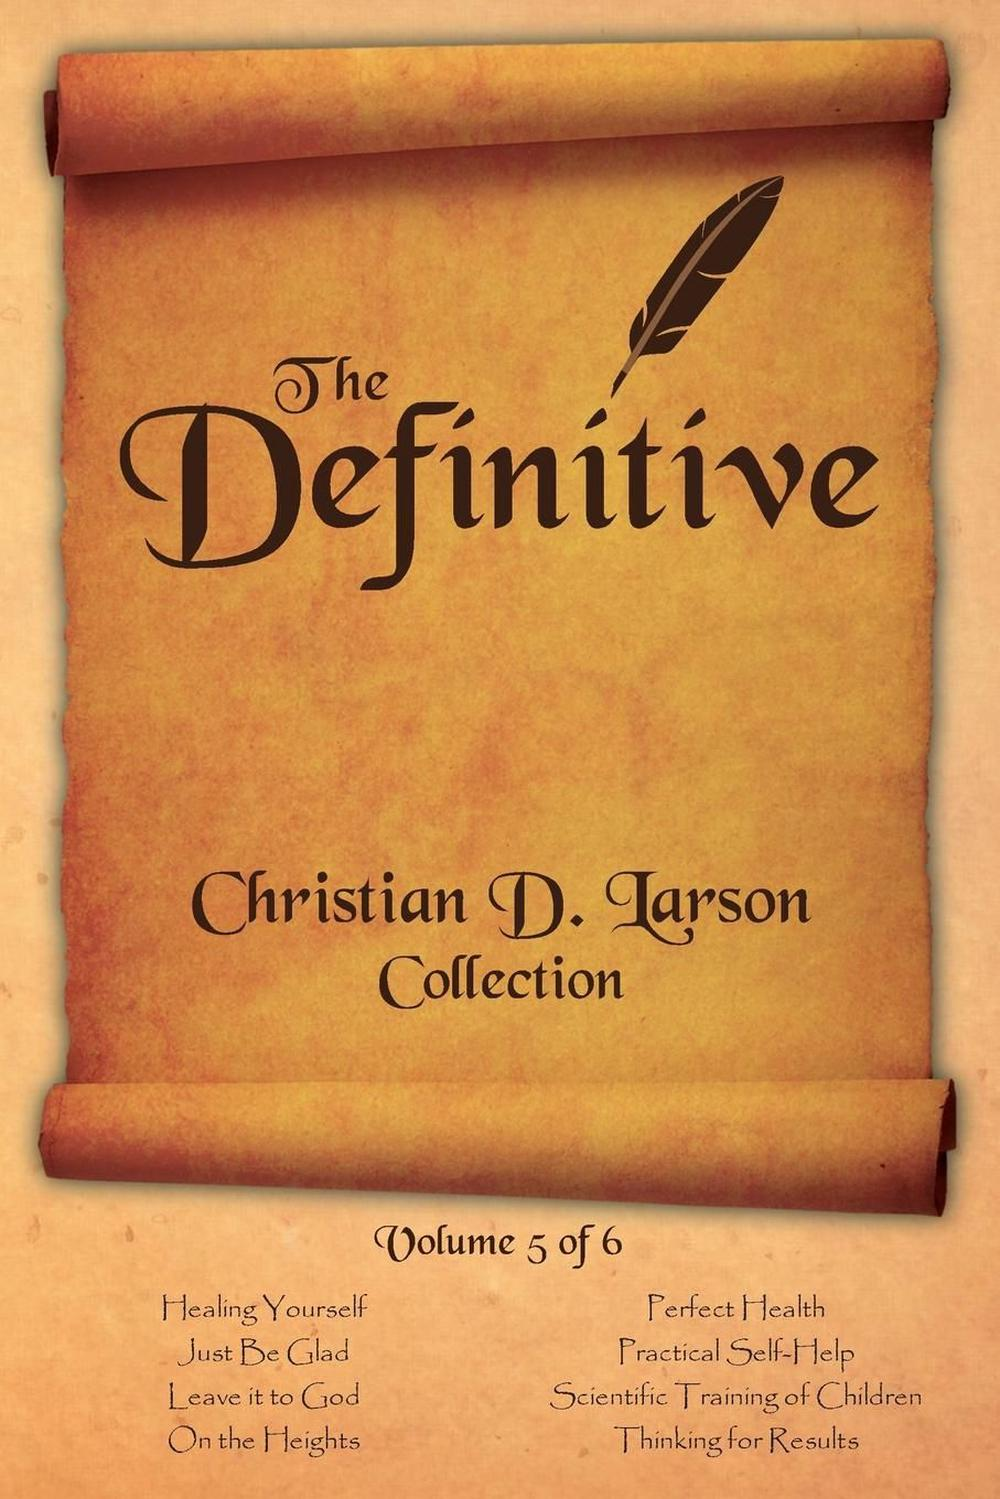 The Definitive Christian D. Larson Collection - Volume 5 of 6 by Christian D Larson, ISBN: 9780990964346